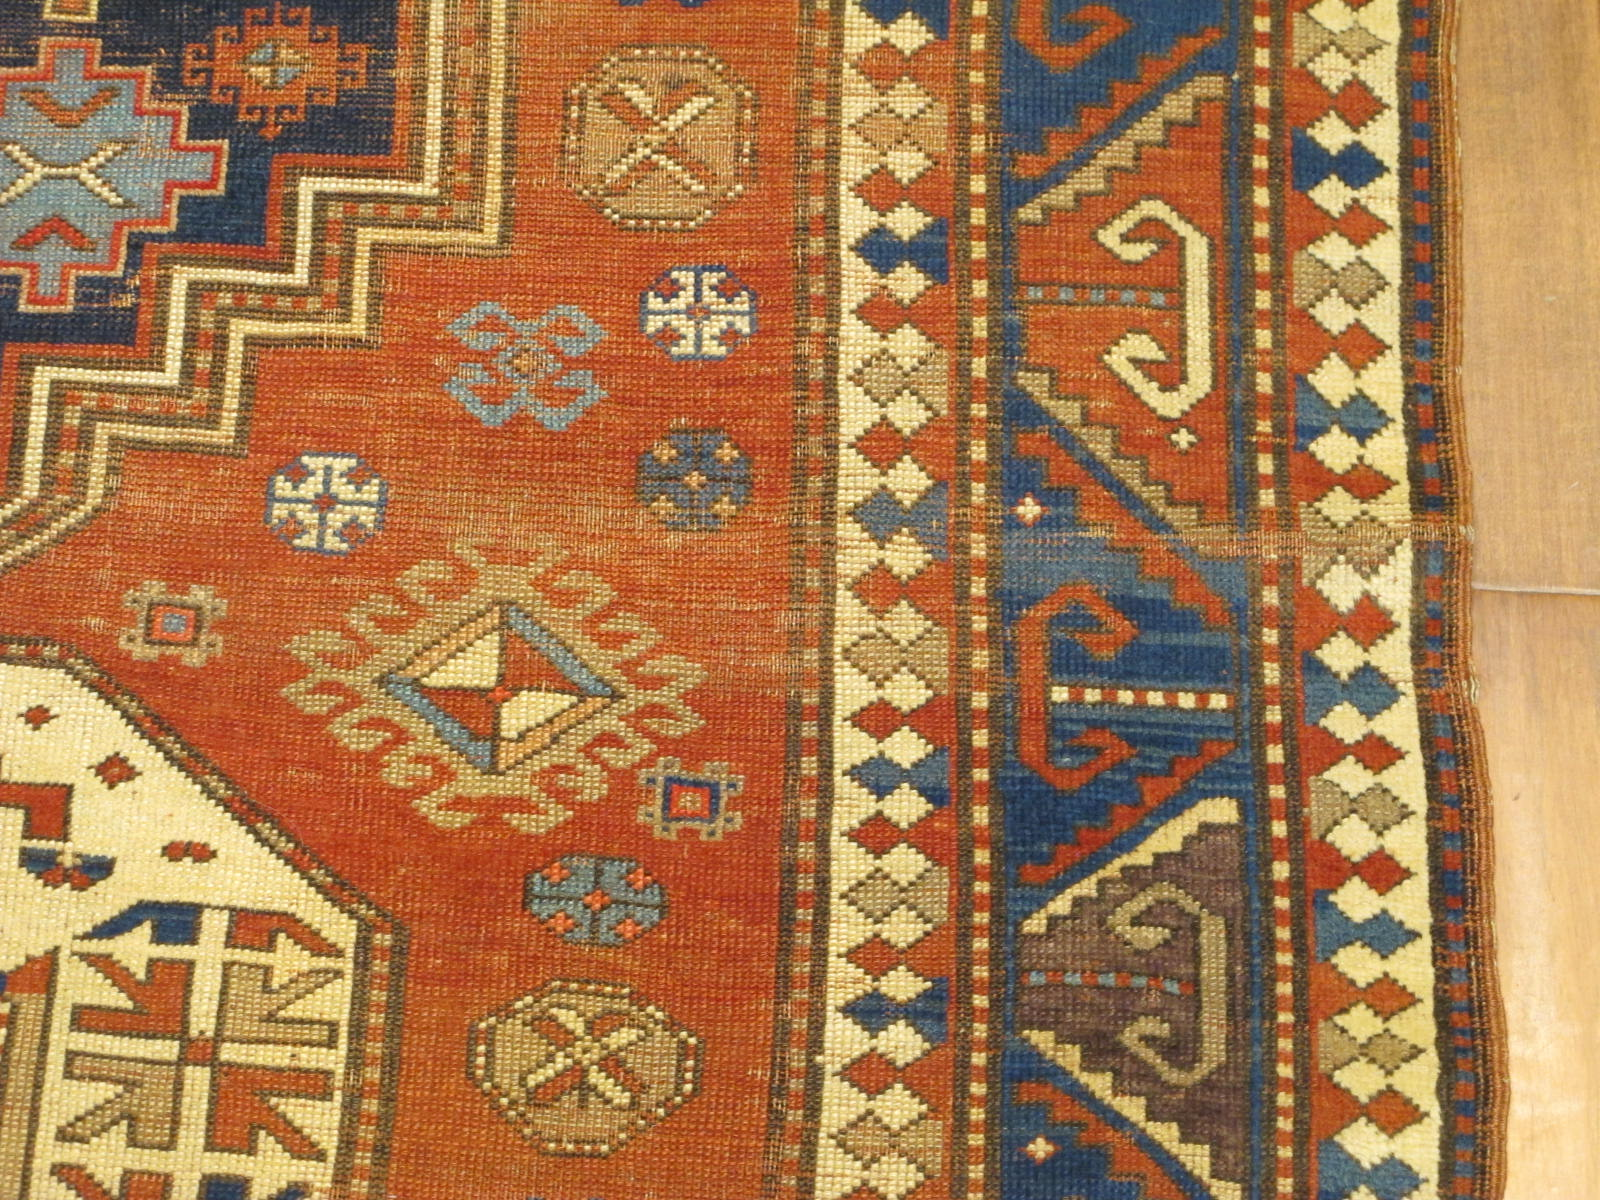 23087 antique caucasus kazak rug 5,2x7,4 (4)